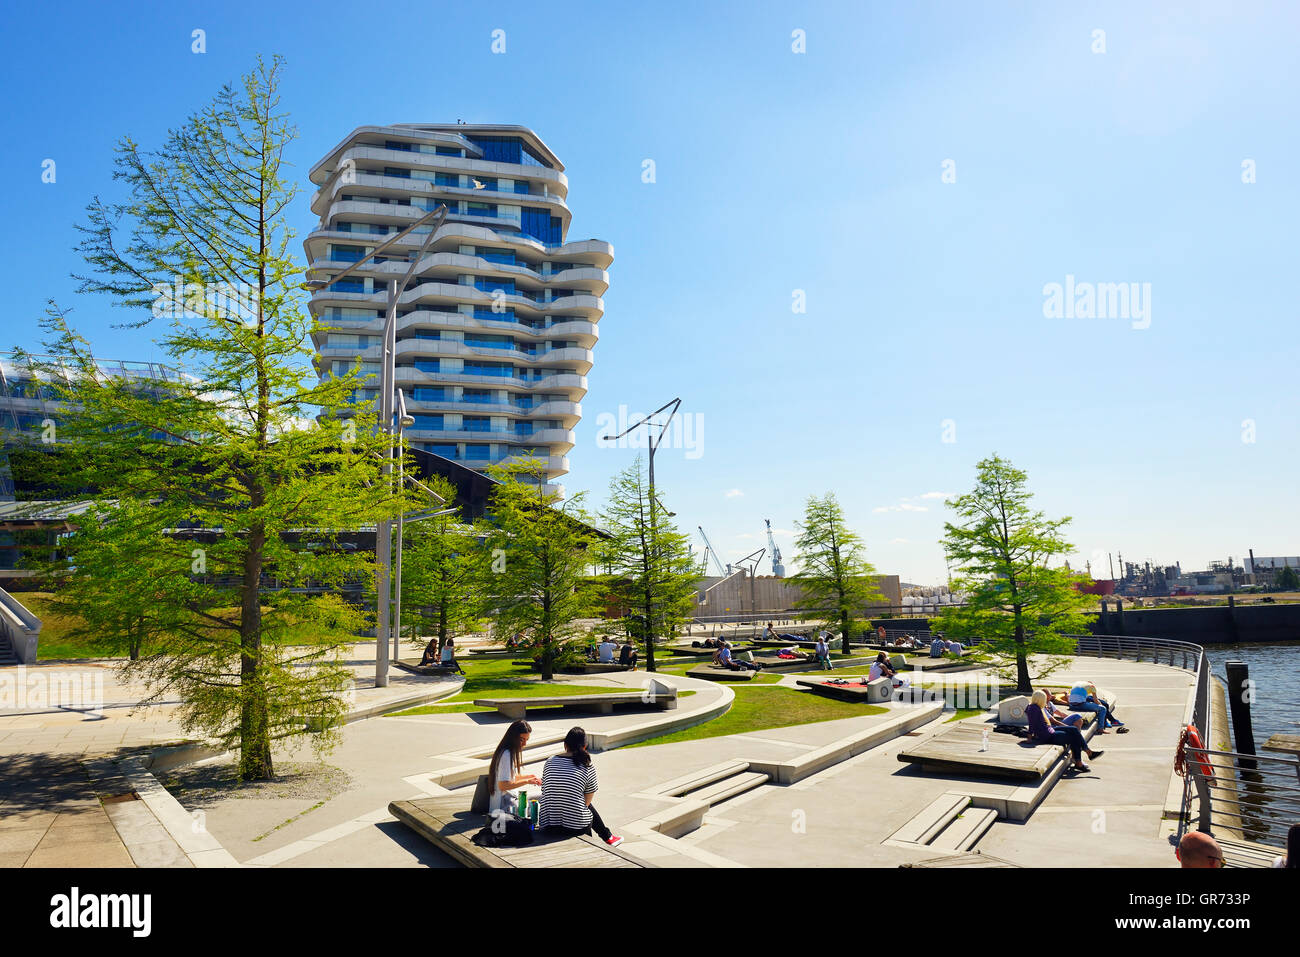 Marco Polo Tower Marco Polo Terraces And Marco Polo Tower In Hamburg, Germany Stock Photo - Alamy